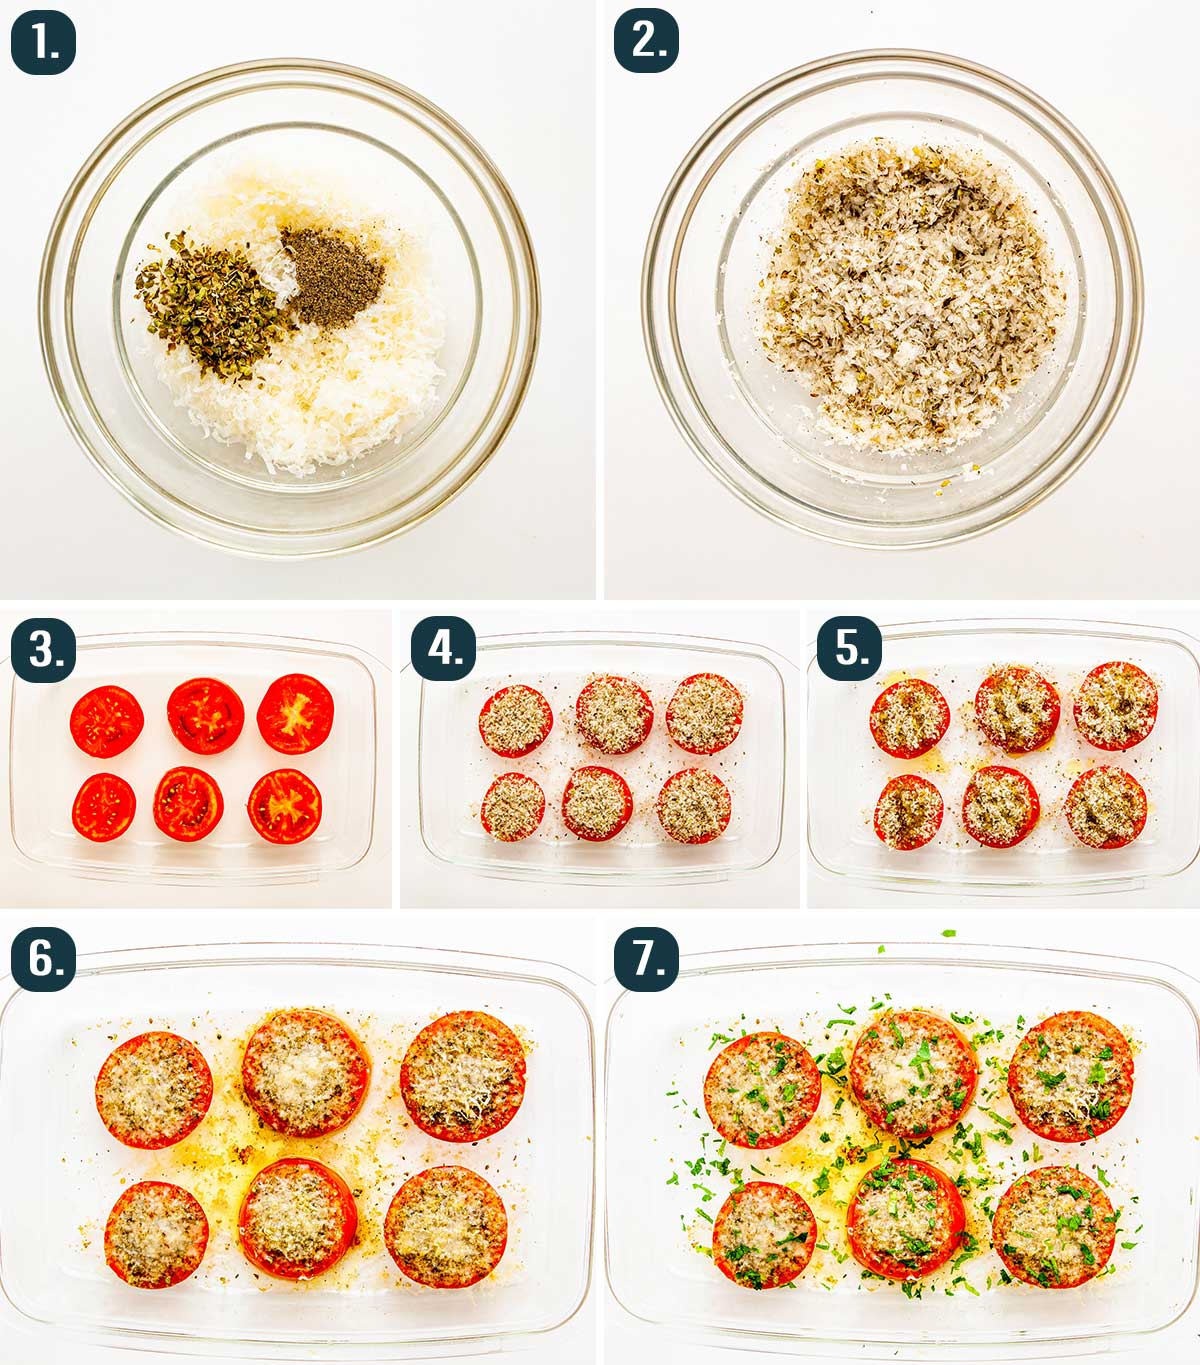 detailed process shots showing how to bake parmesan tomato slices